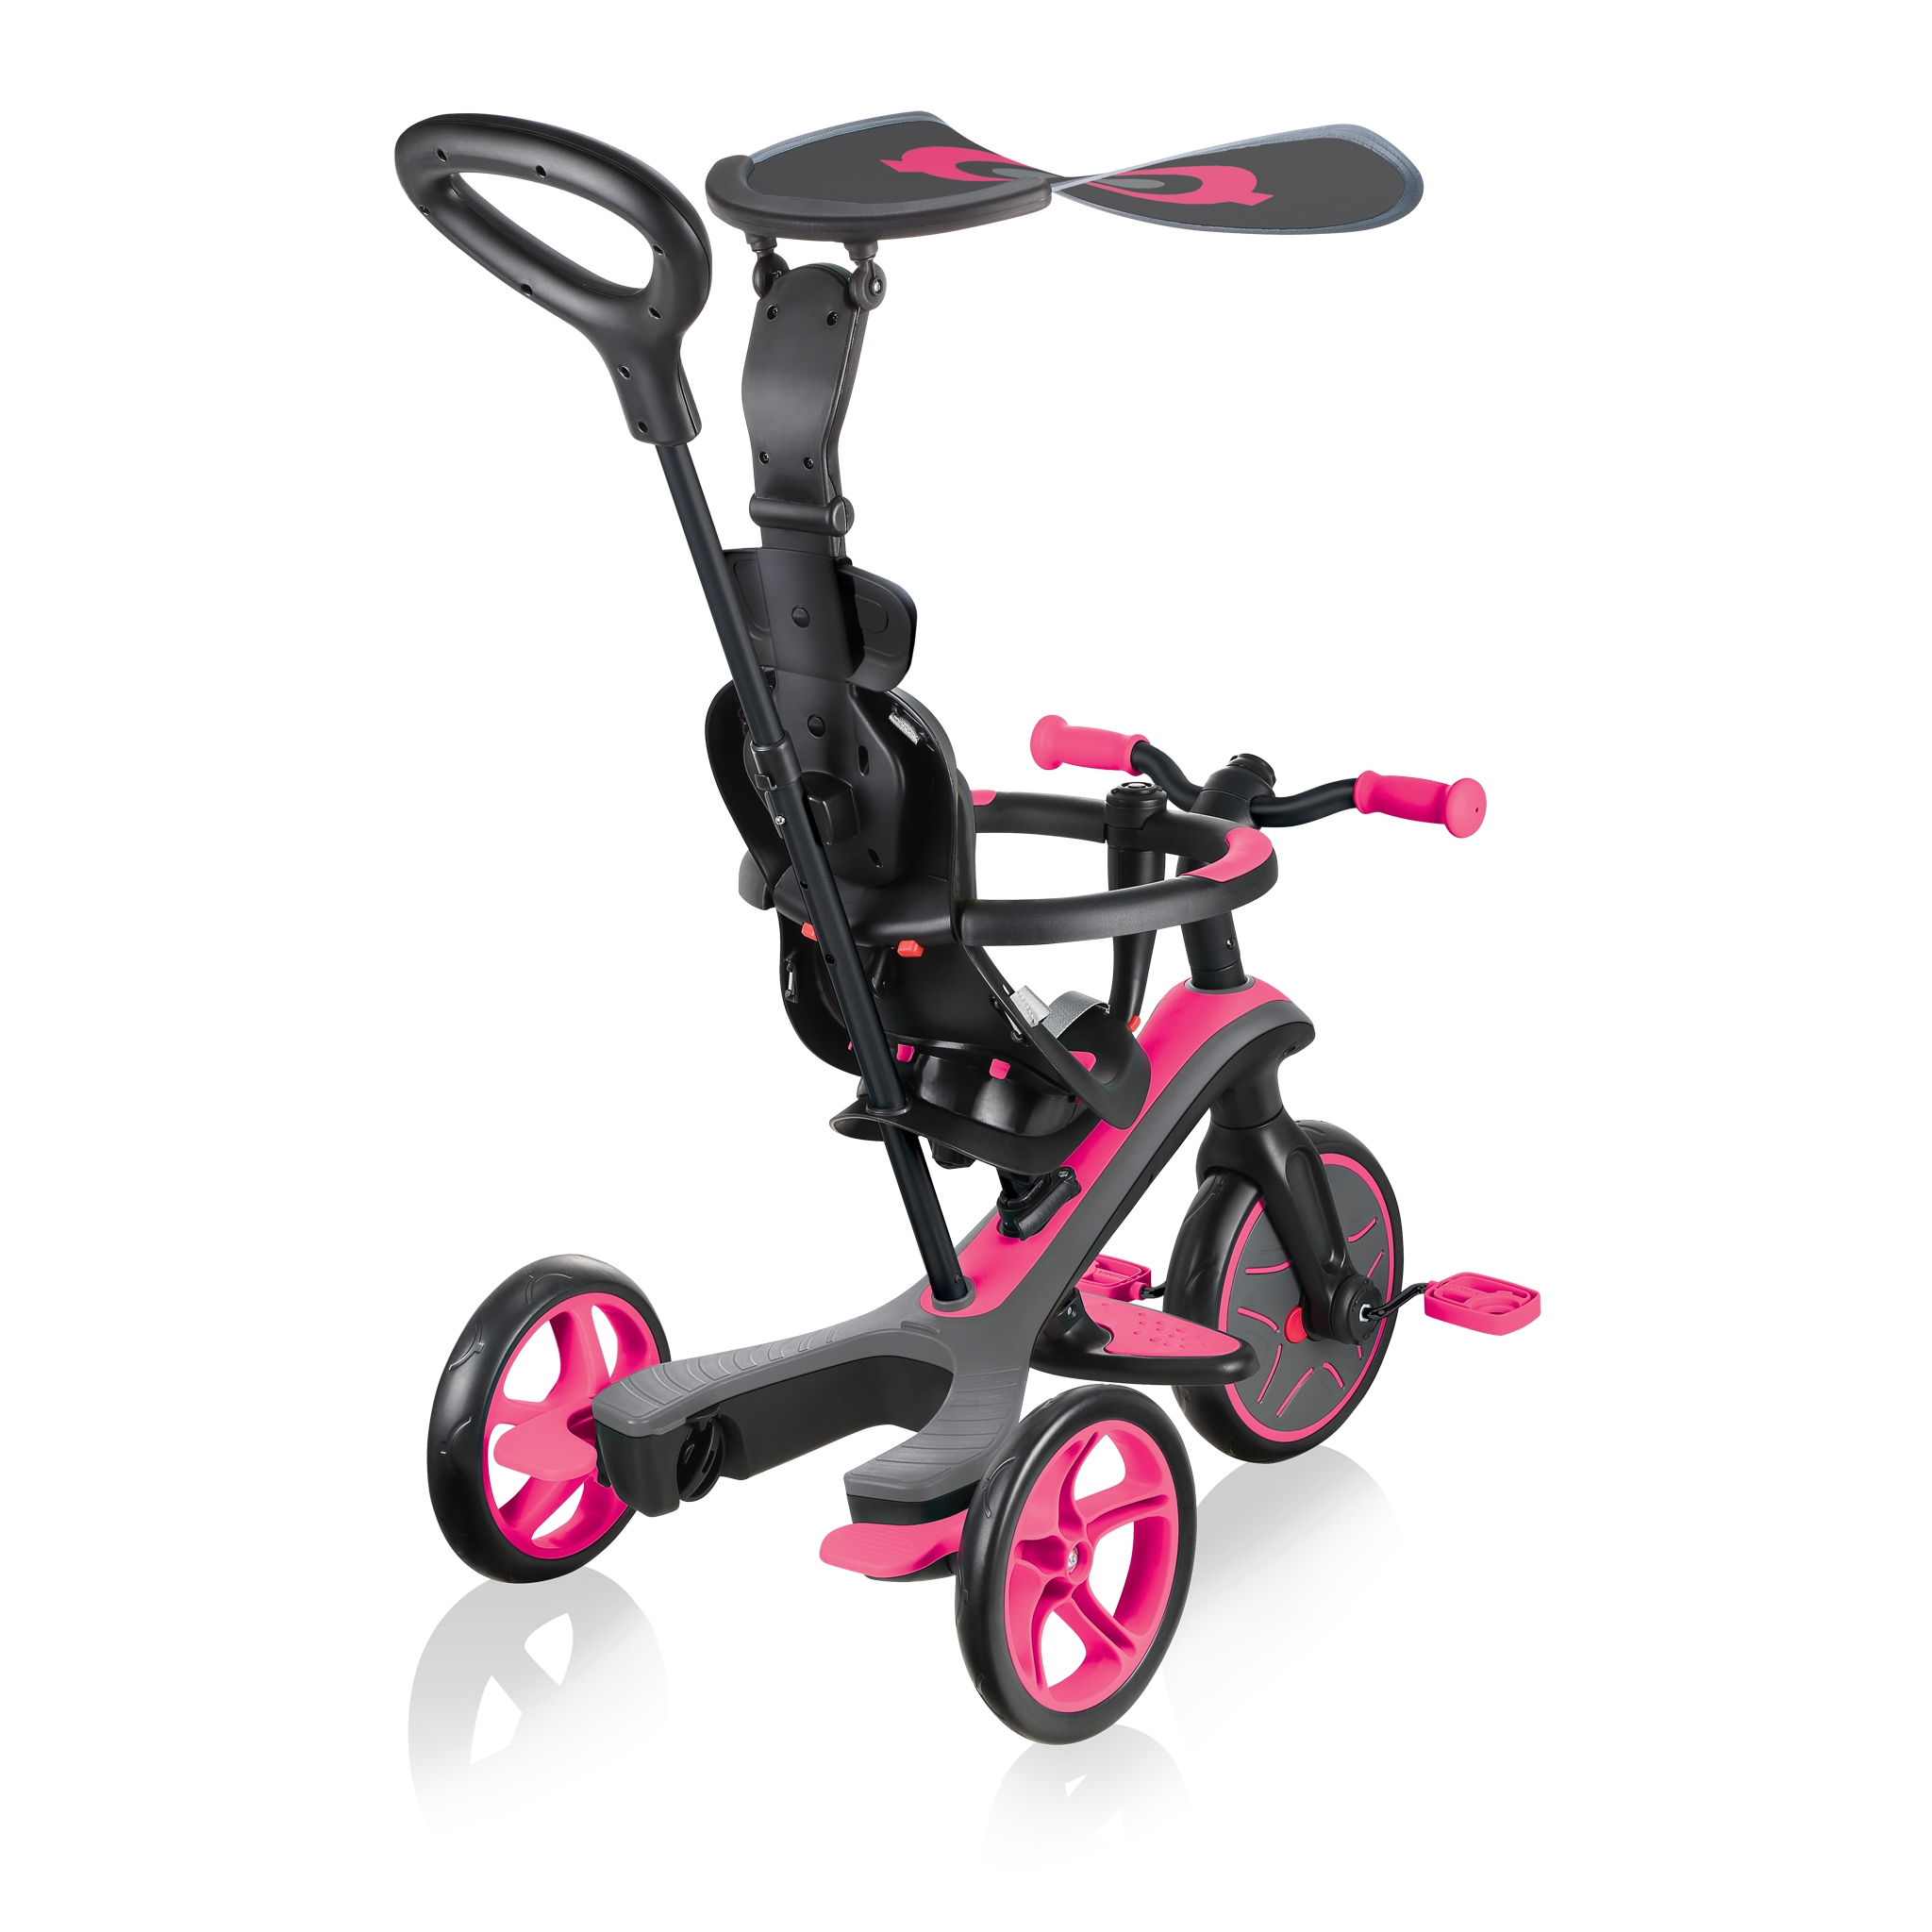 Globber-EXPLORER-TRIKE-4in1-all-in-one-baby-tricycle-and-kids-balance-bike-stage1-infant-trike